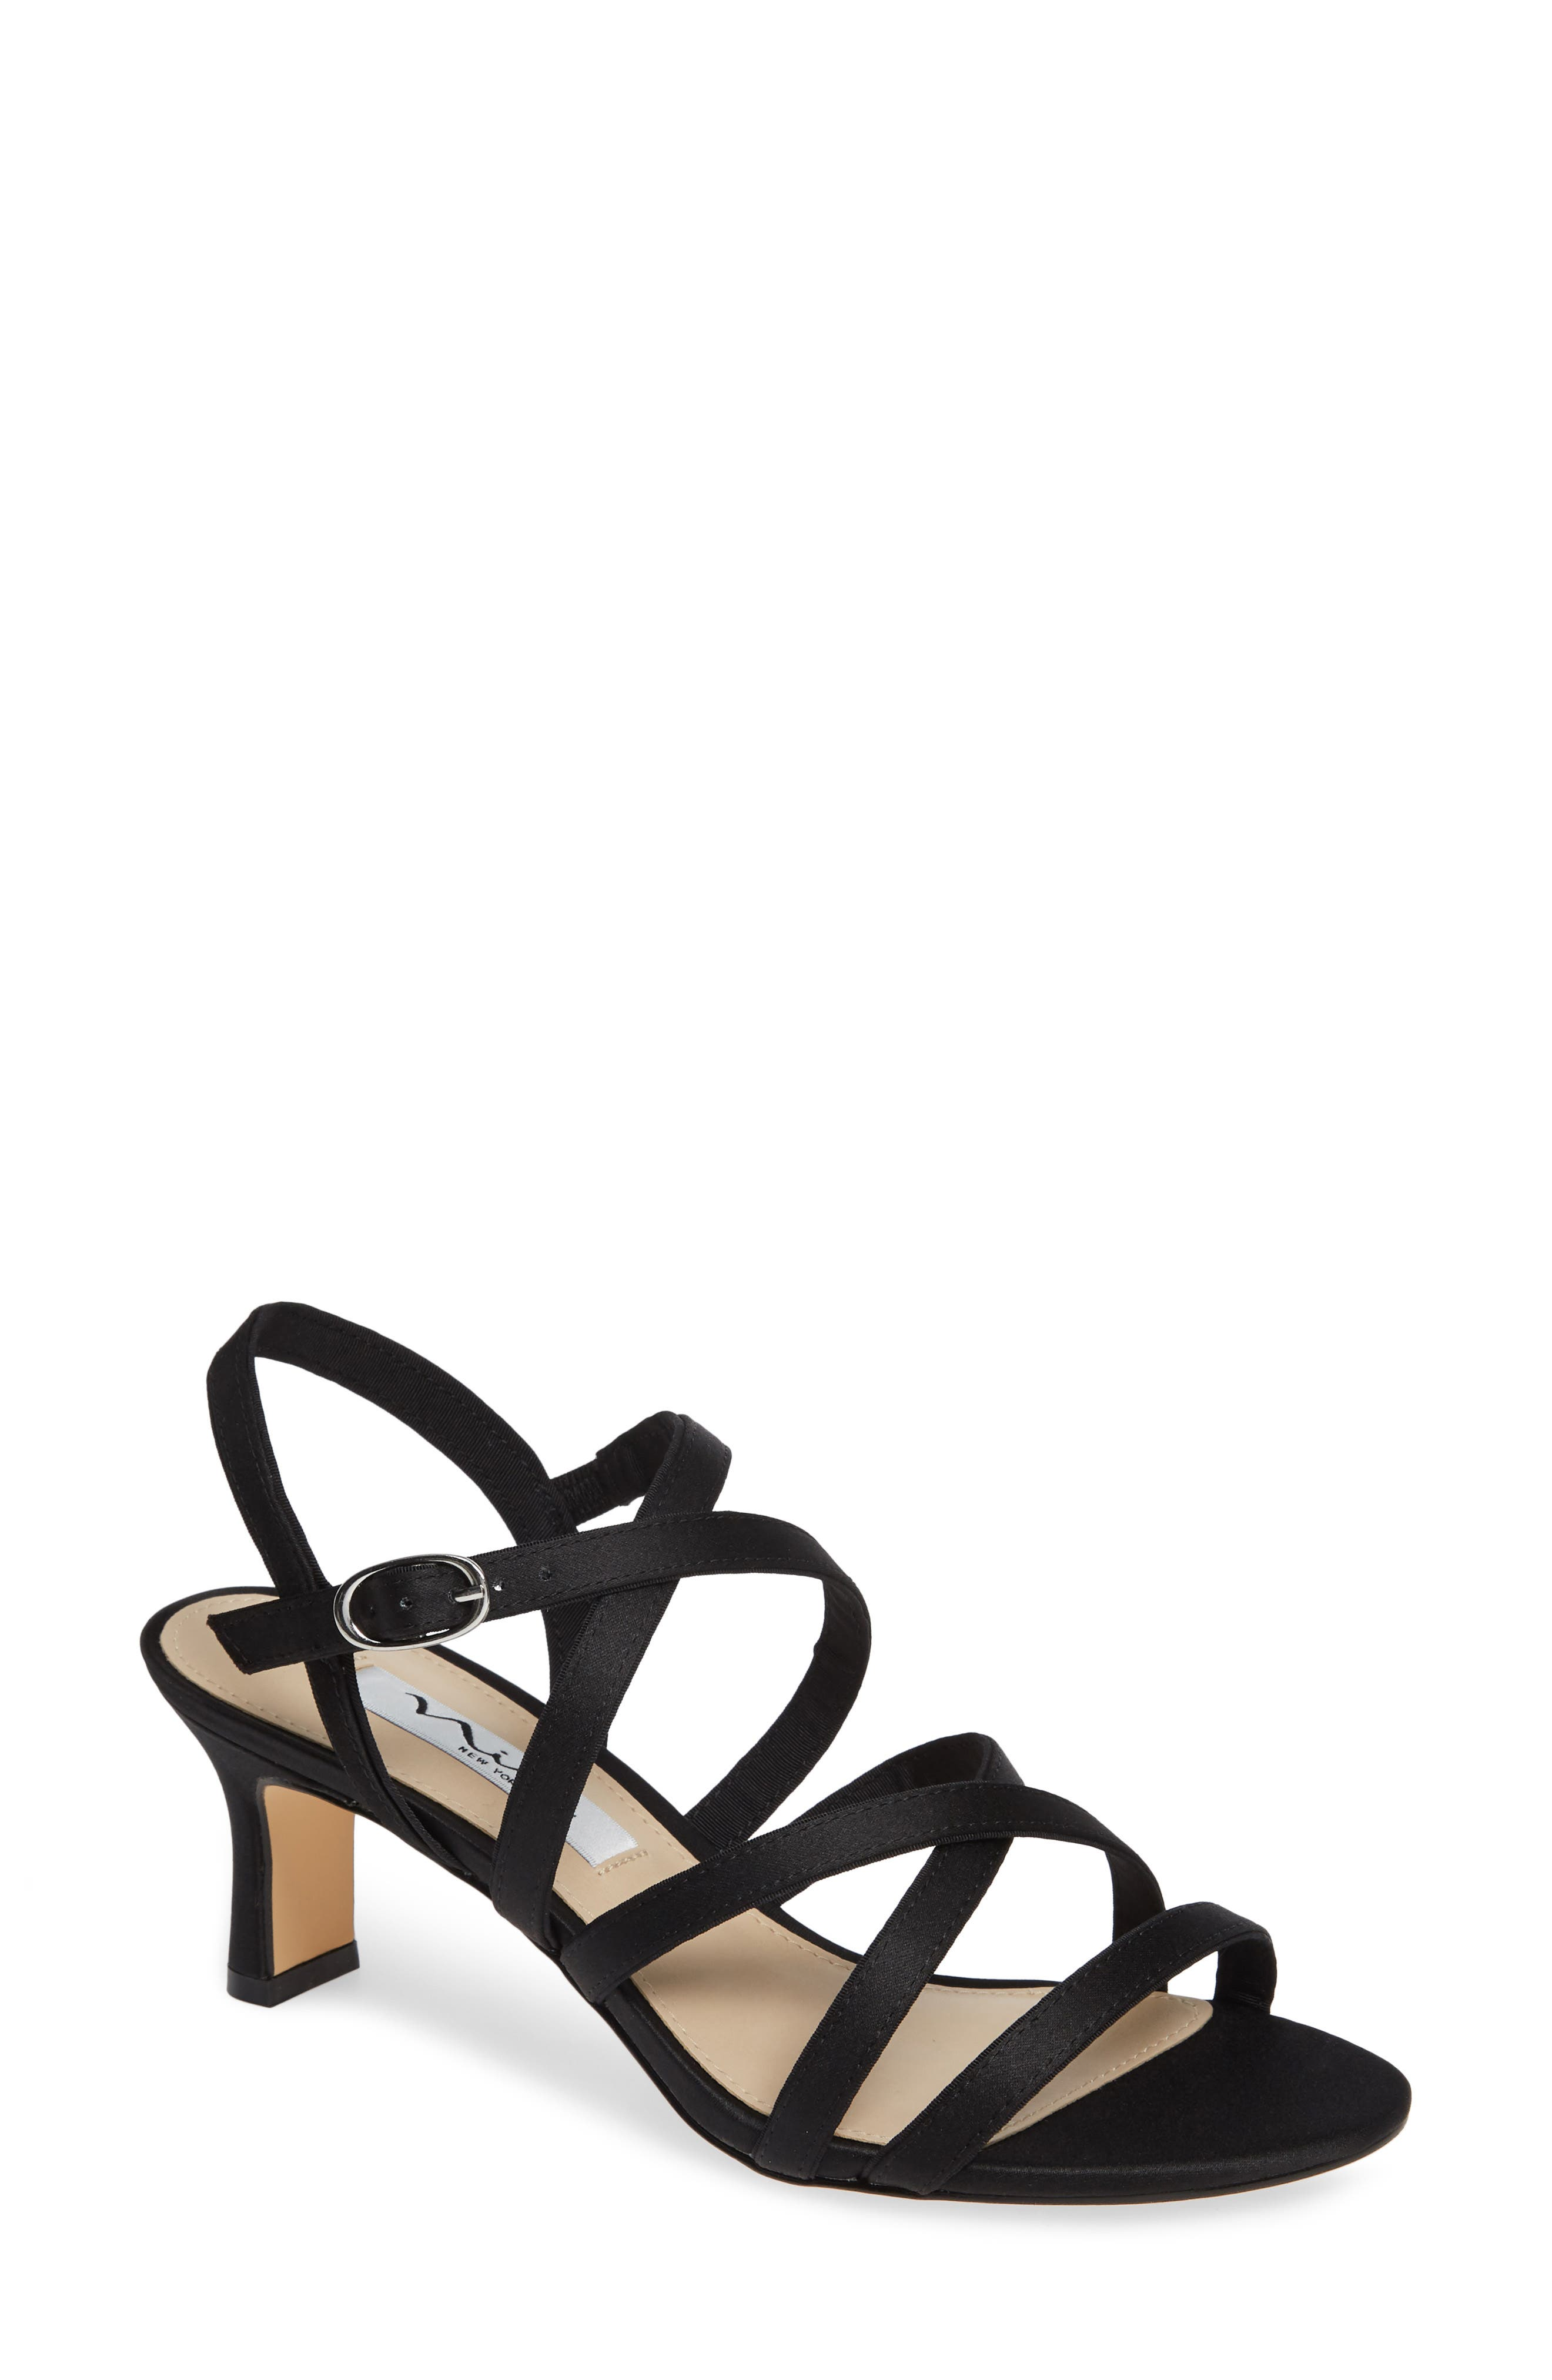 NINA, Genaya Strappy Evening Sandal, Main thumbnail 1, color, BLACK SATIN